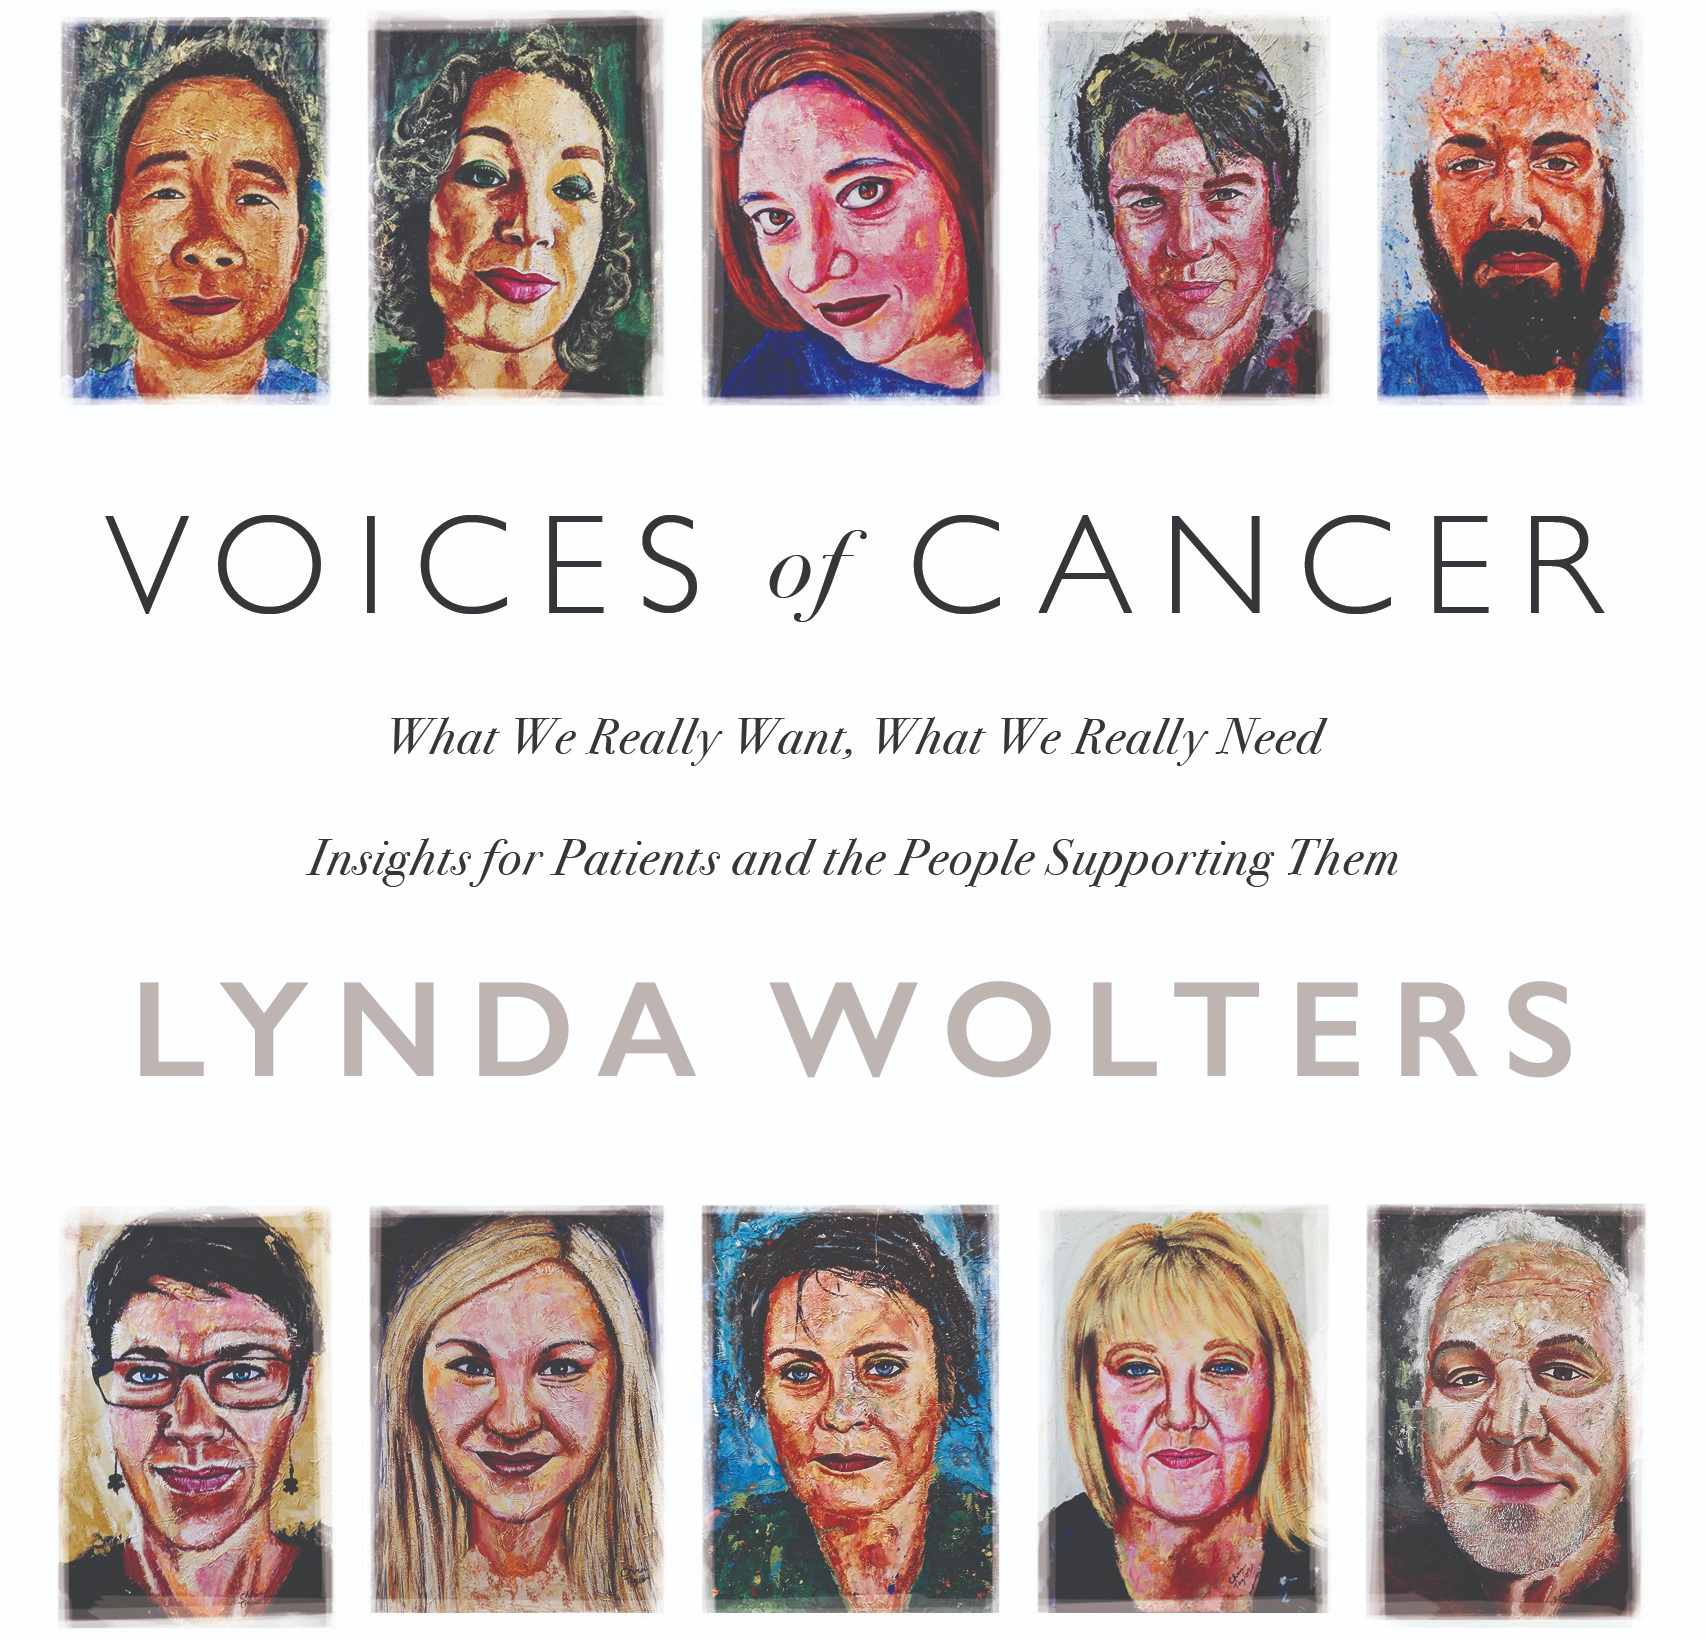 Original paintings of cancer patients - by Chris Taylor  https://www.facebook.com/chrisarttaylor?hc_location=ufi